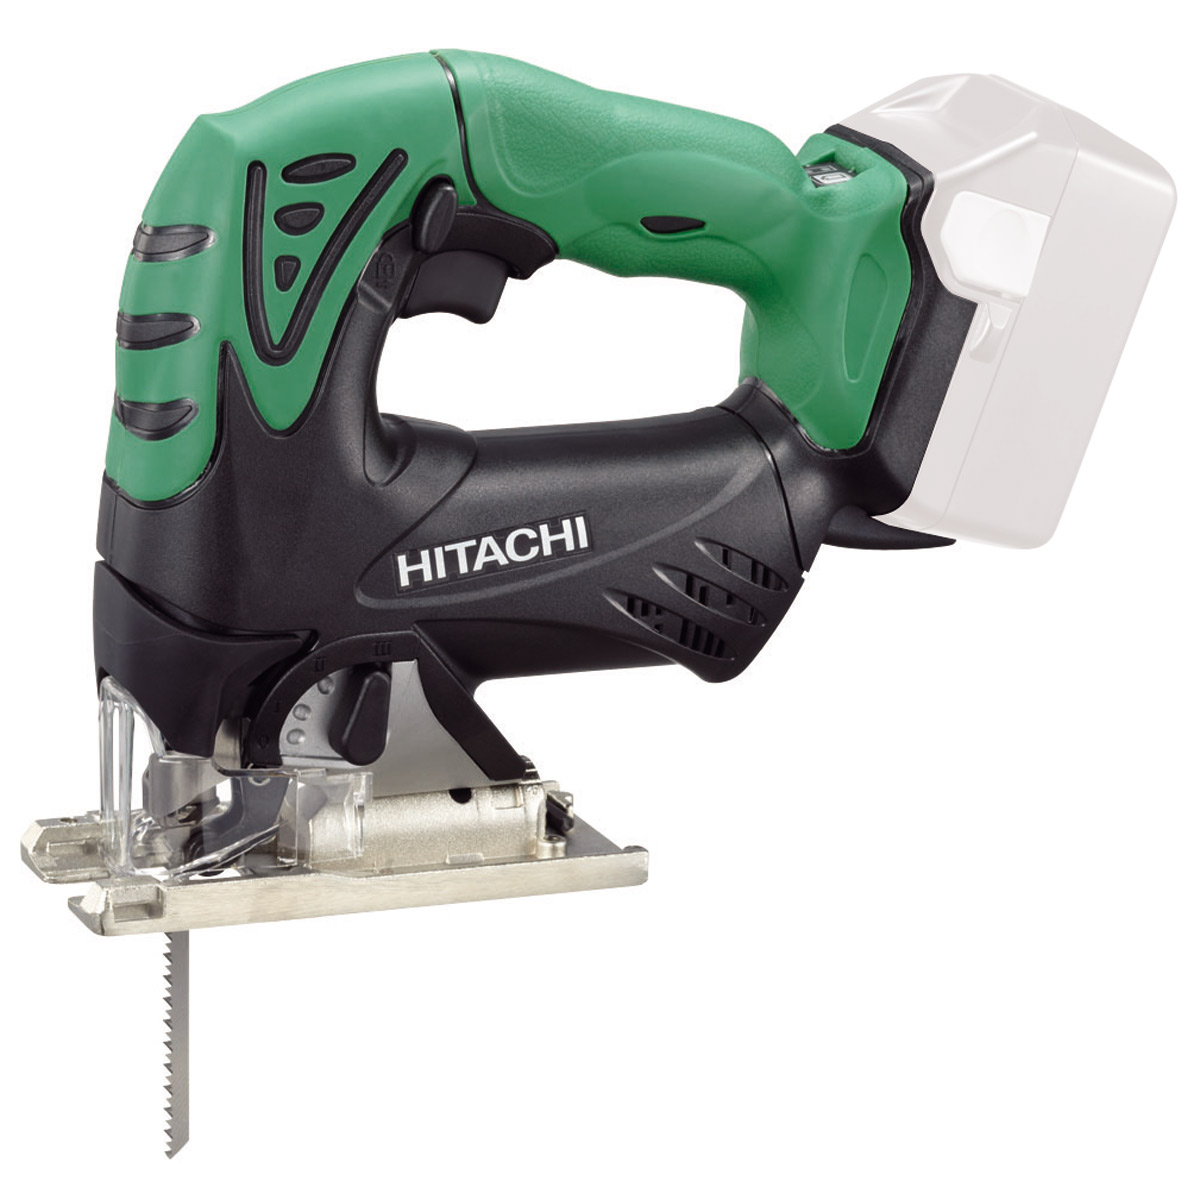 HITACHI CJ18DSL/L4 18V JIGSAW (BODY ONLY)